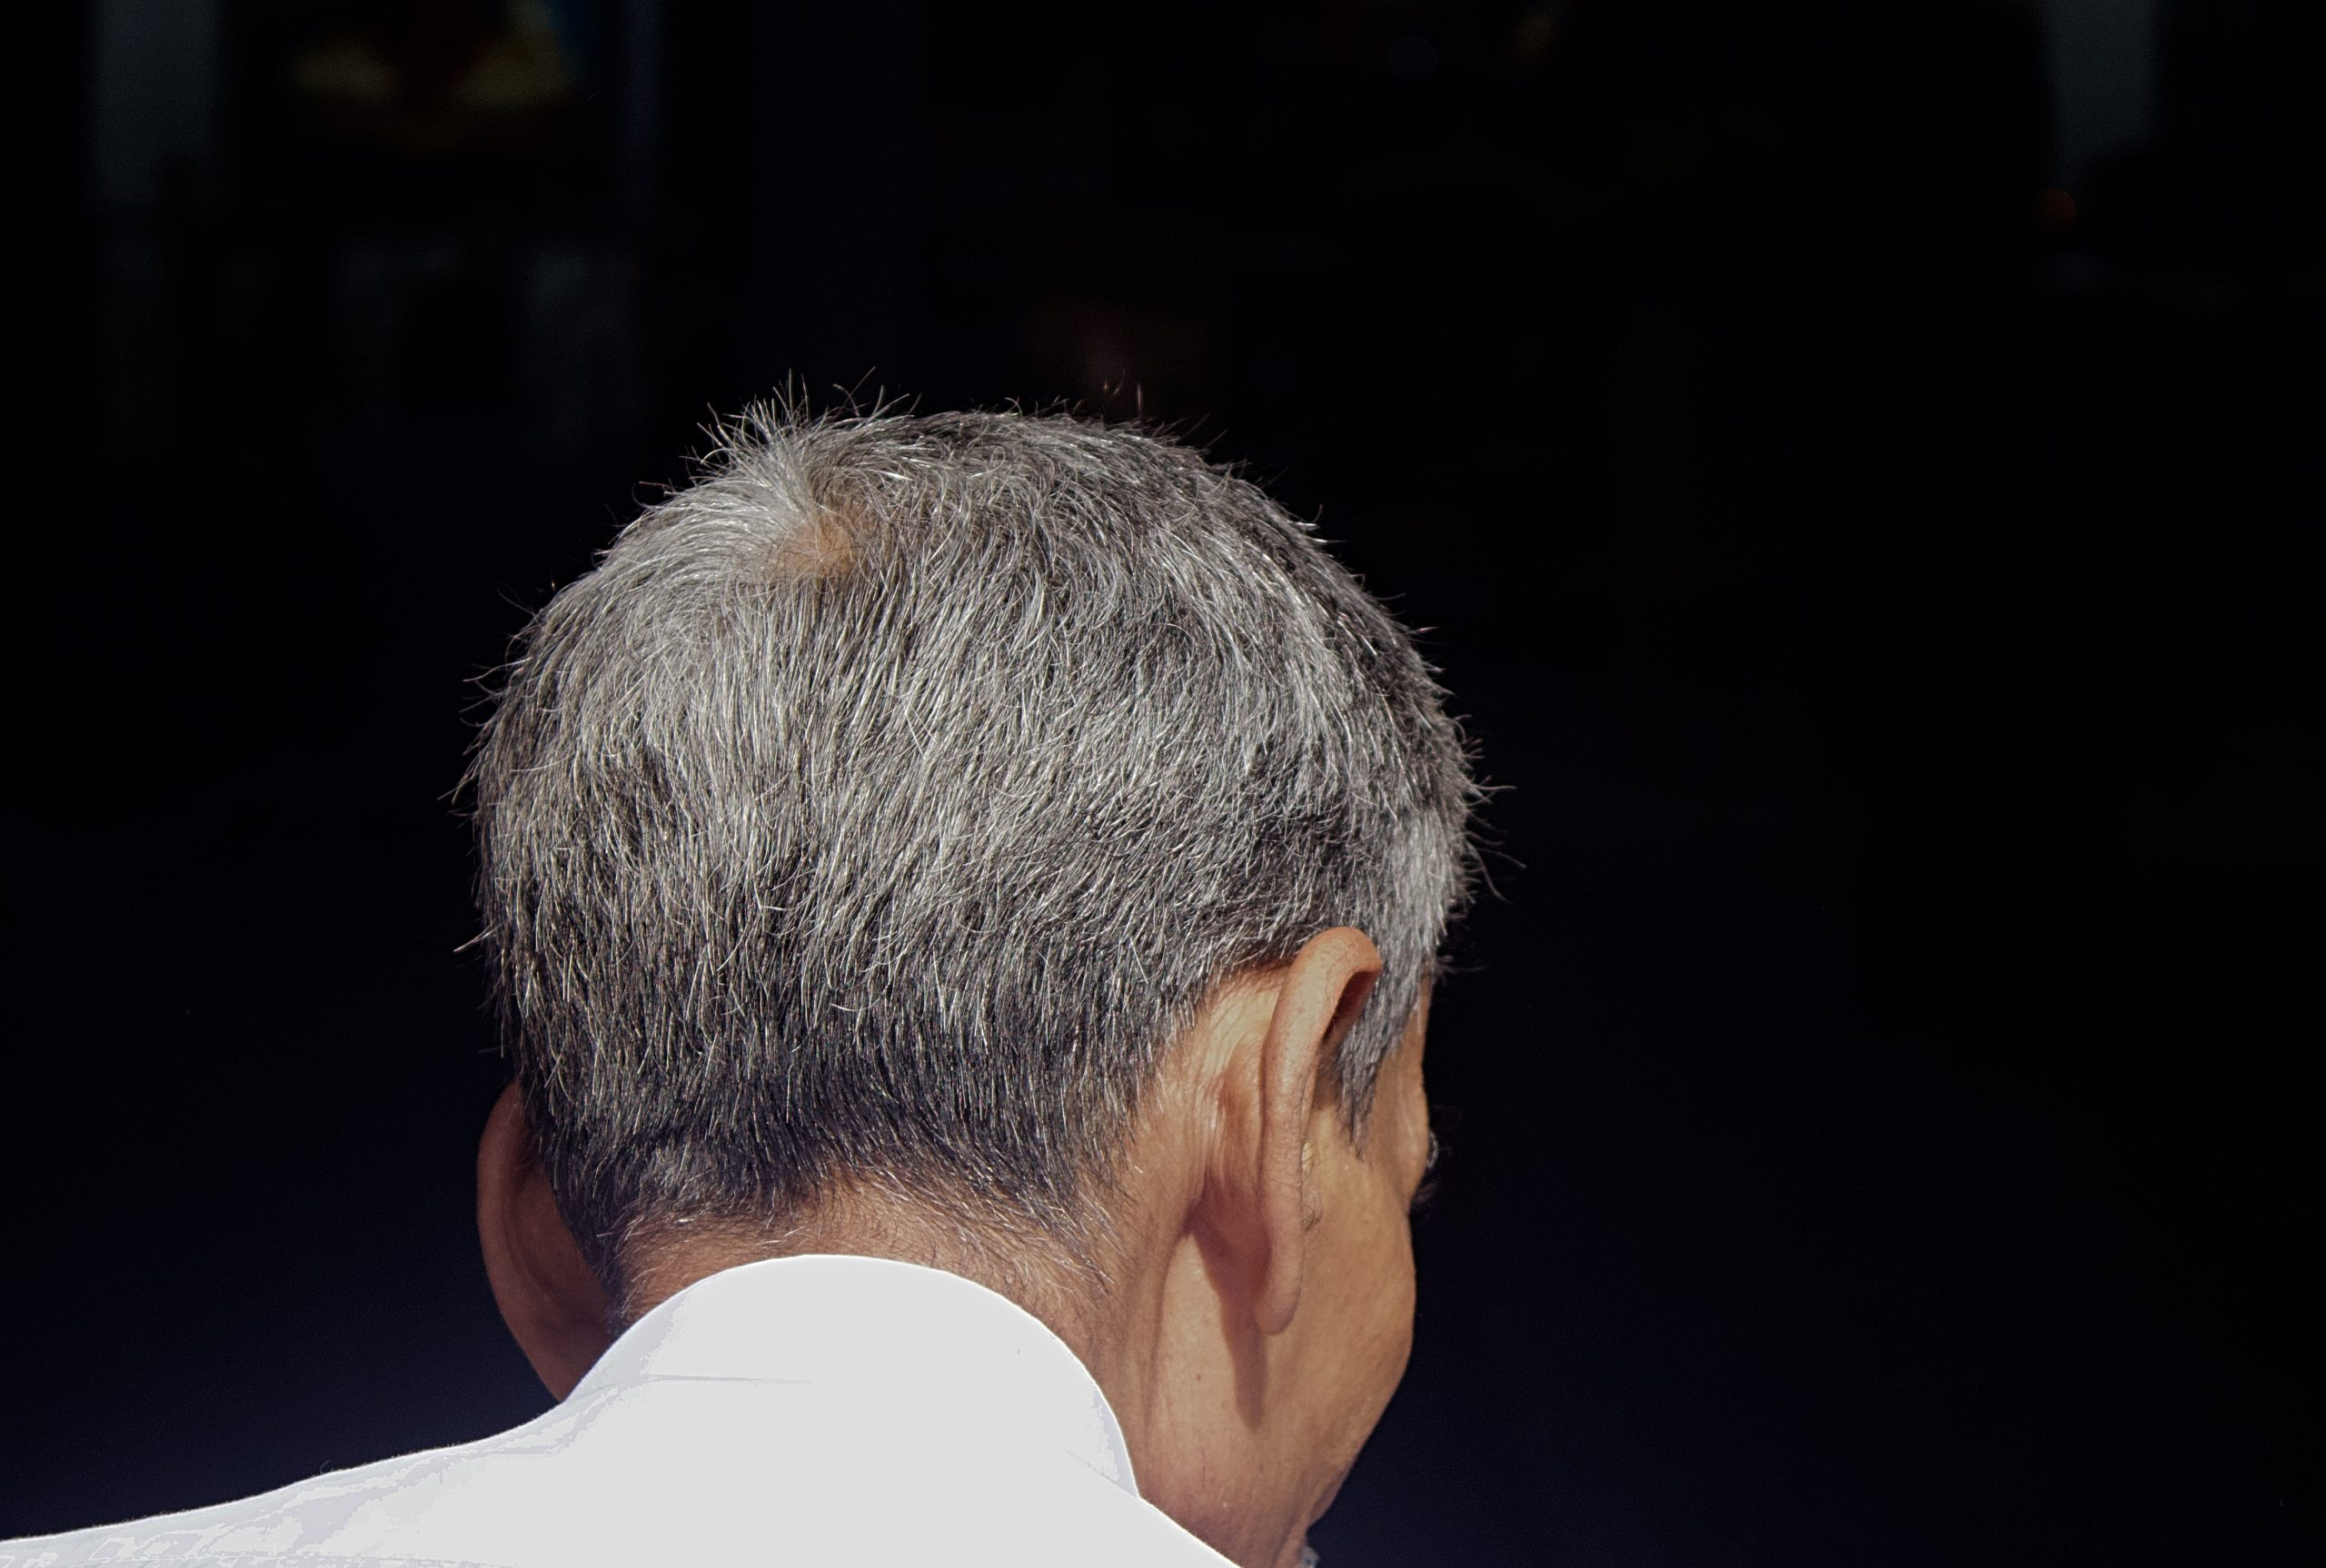 Photo: Say a Prayer. Image of a man's head taken from behind